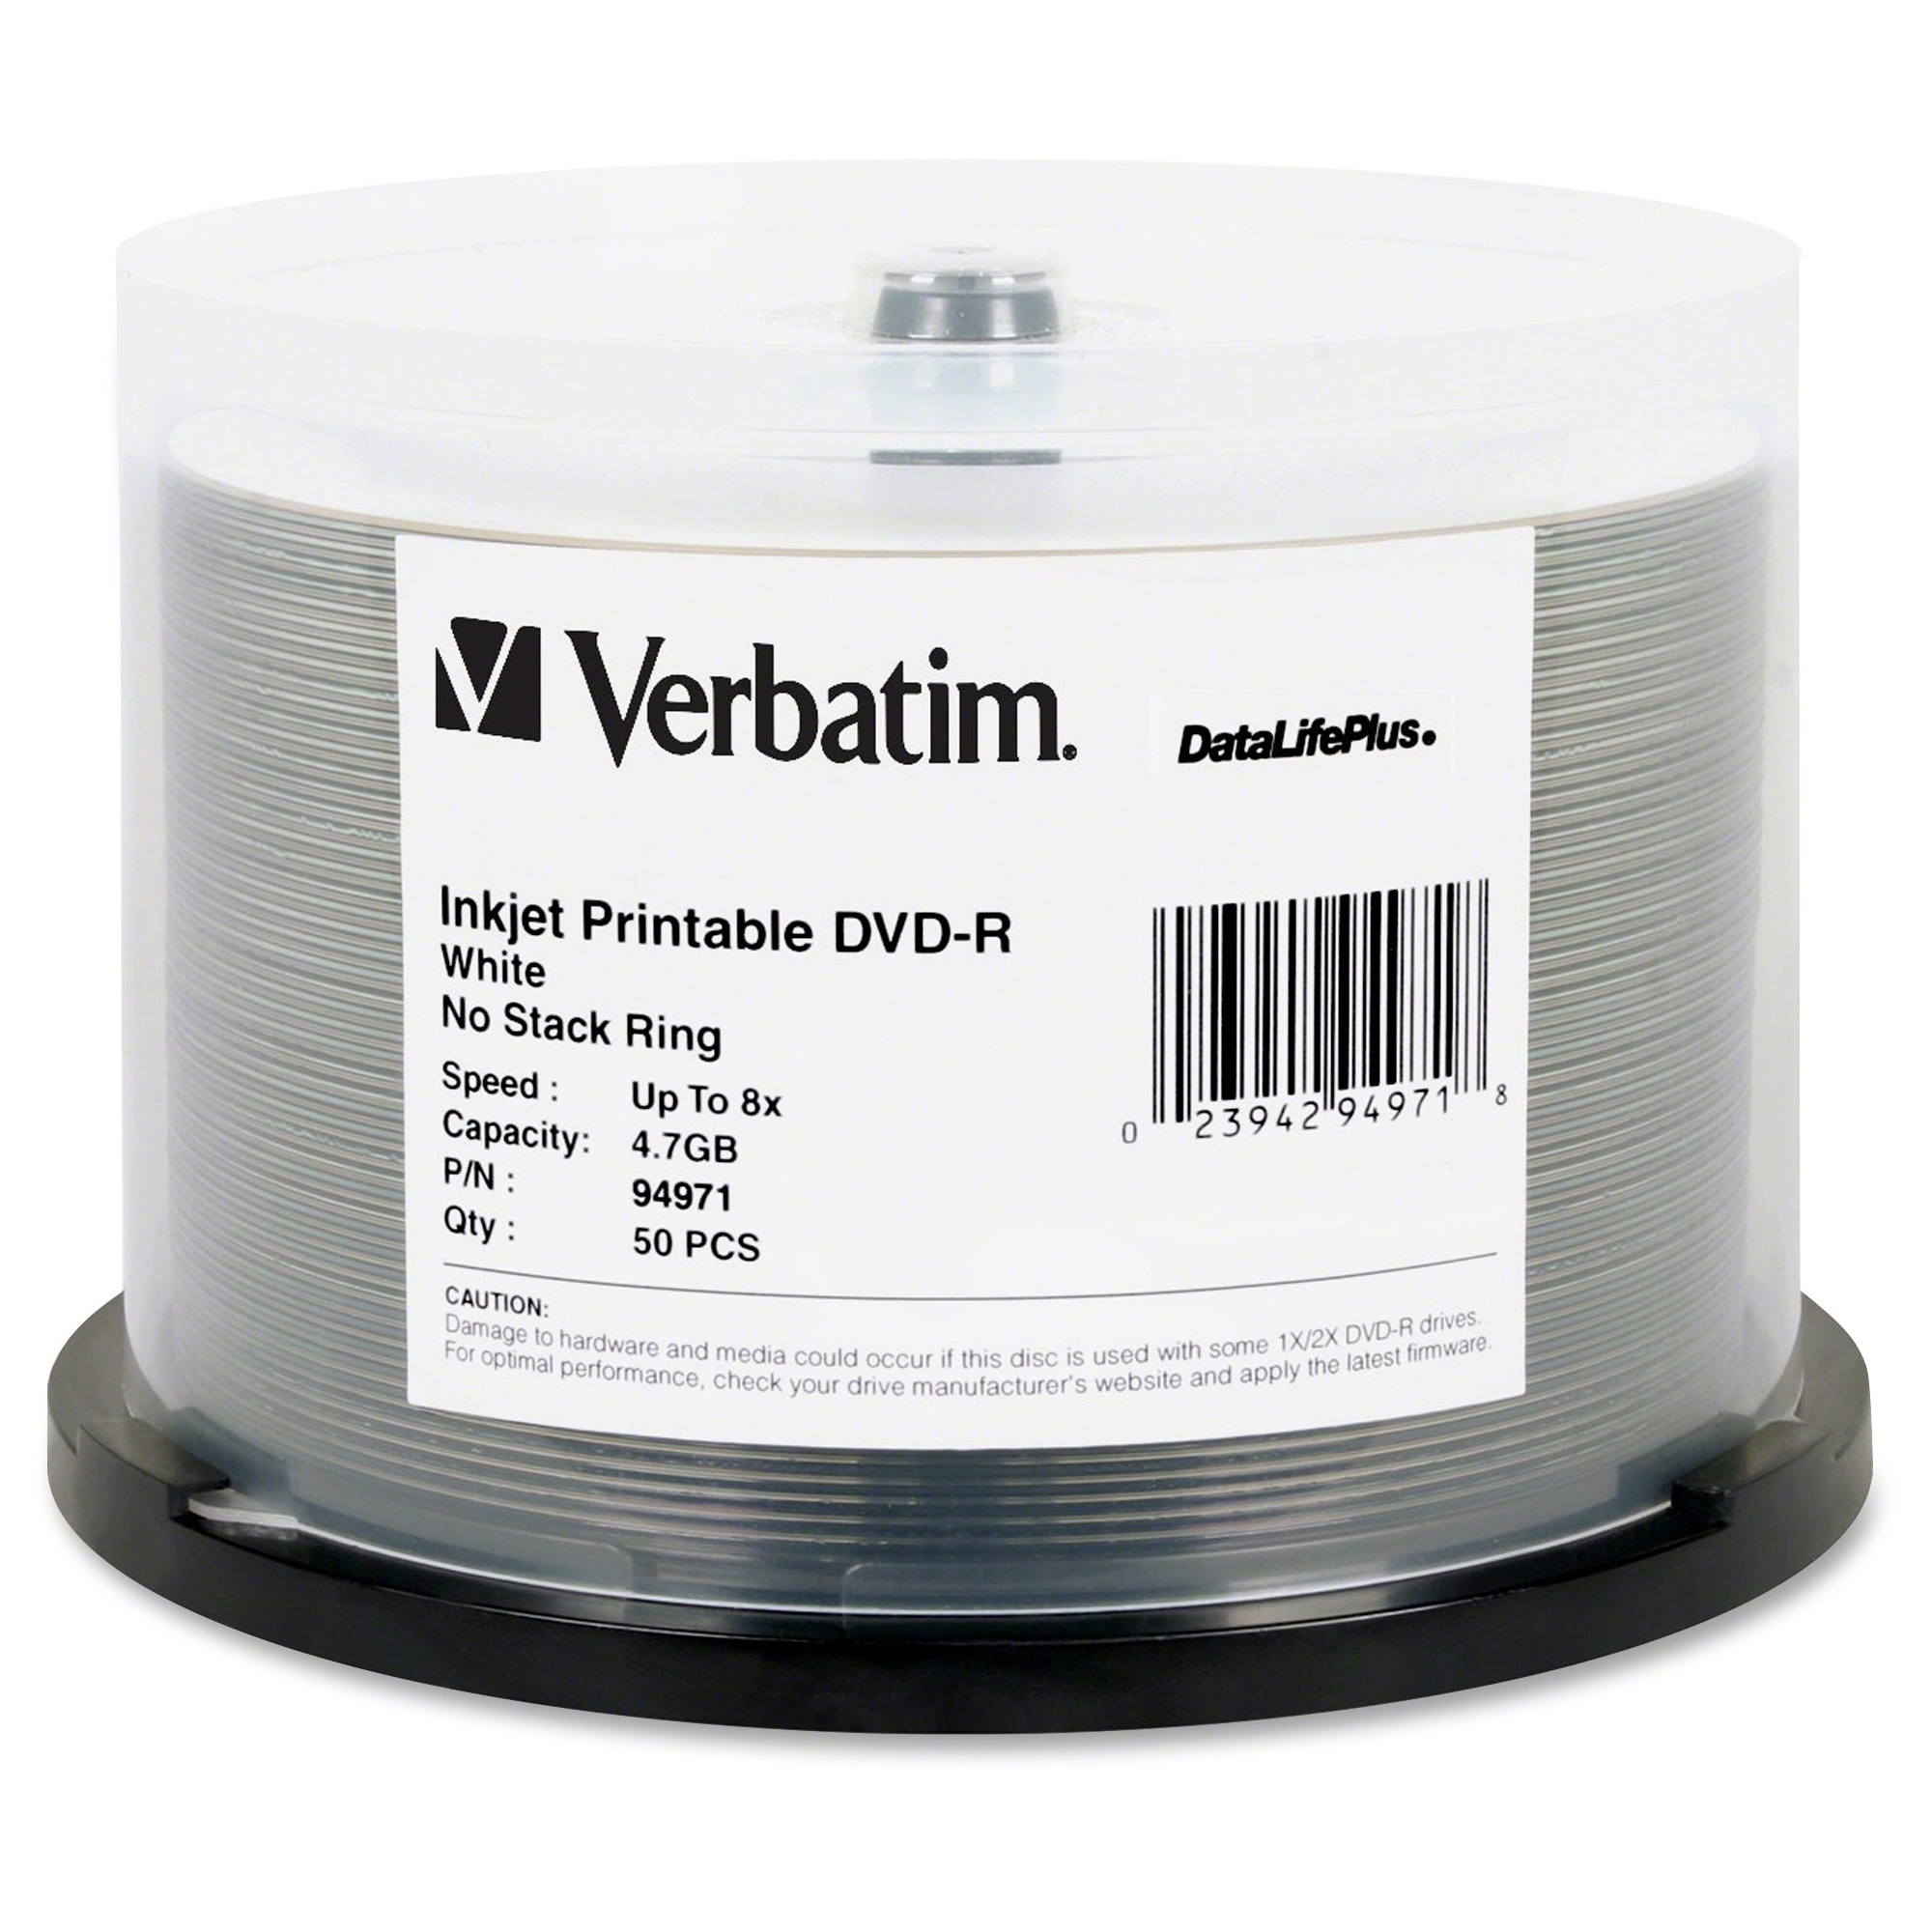 Verbatim Datalifeplus 94971 Dvd Recordable Media - Dvd-r - 8x - 4.70 Gb - 50 Pack Spindle - Inkjet Printable (ver-94971)